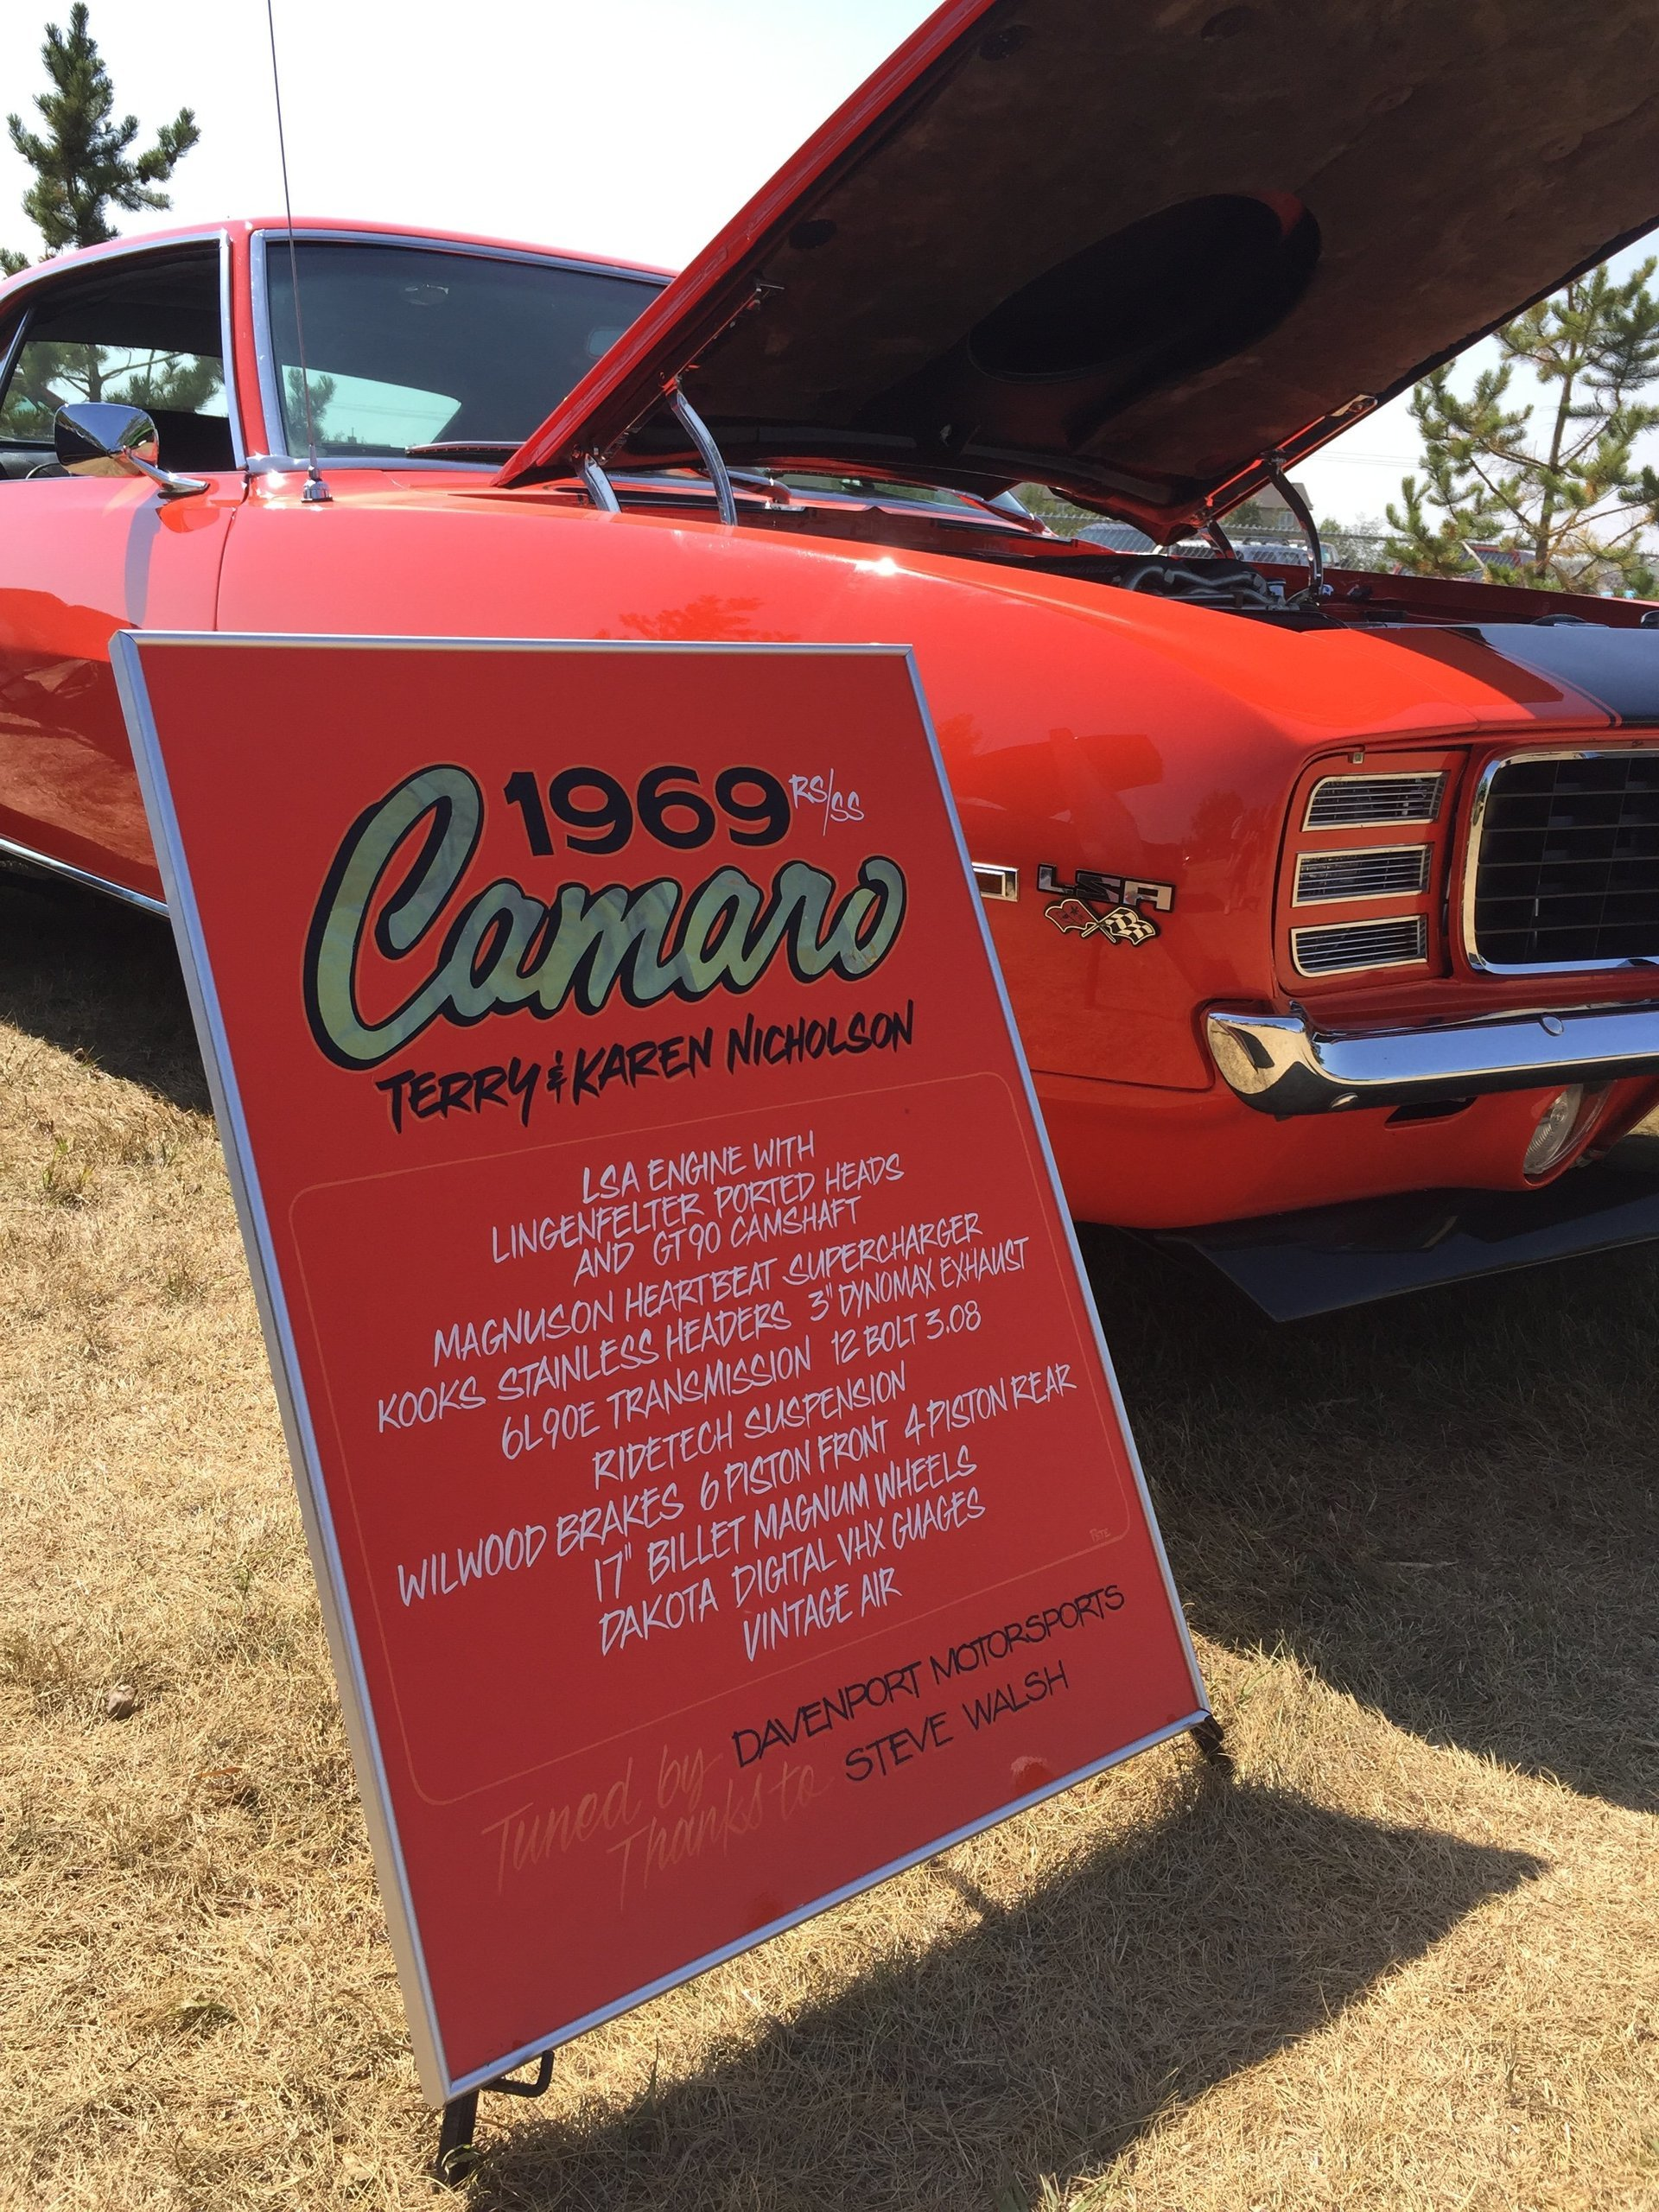 camaro car show sign